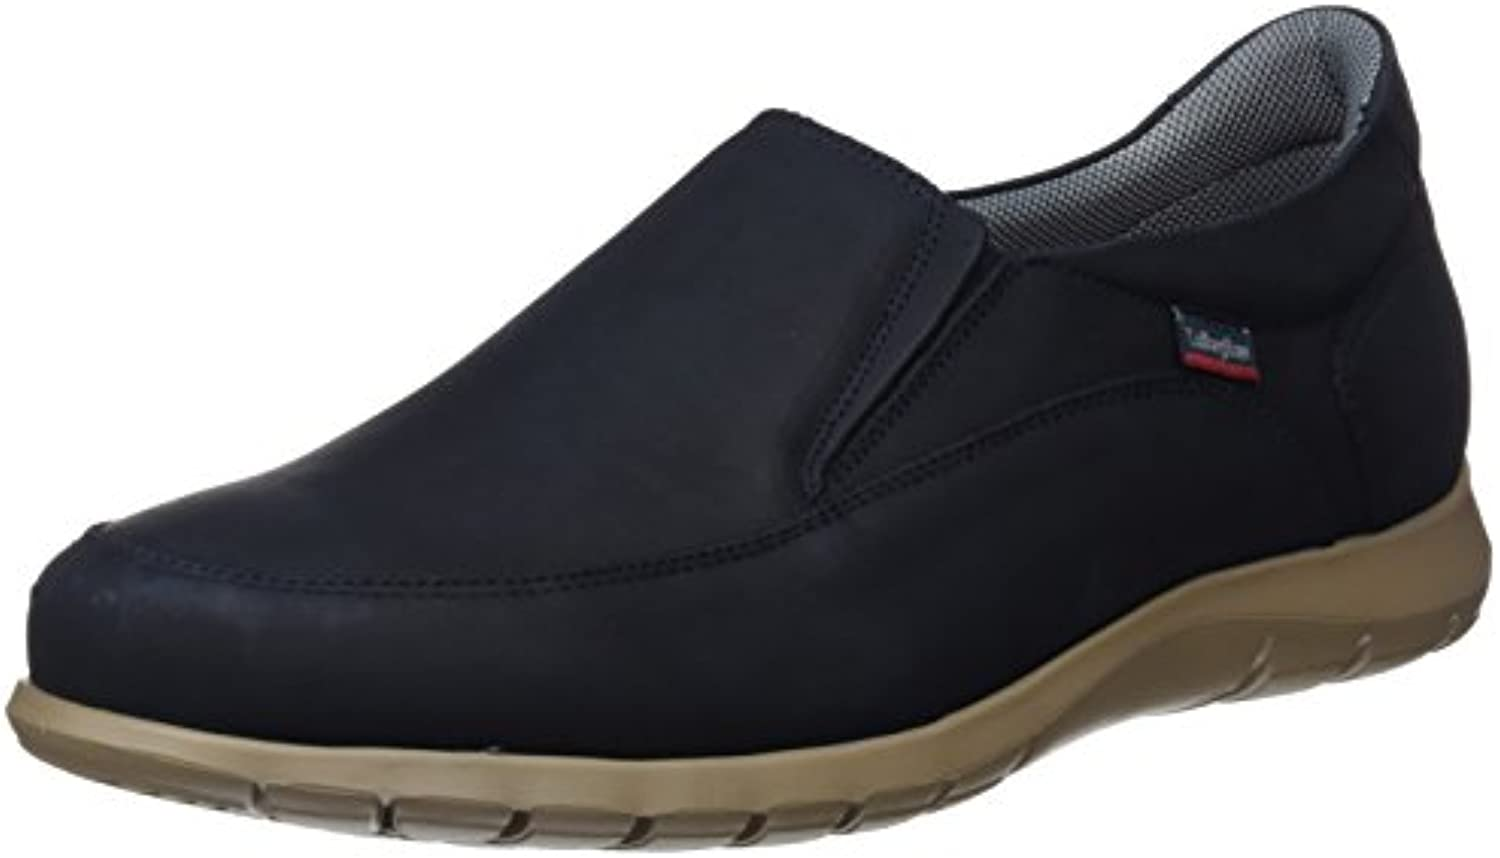 CallagHan 81311 Slip On Herren Leder